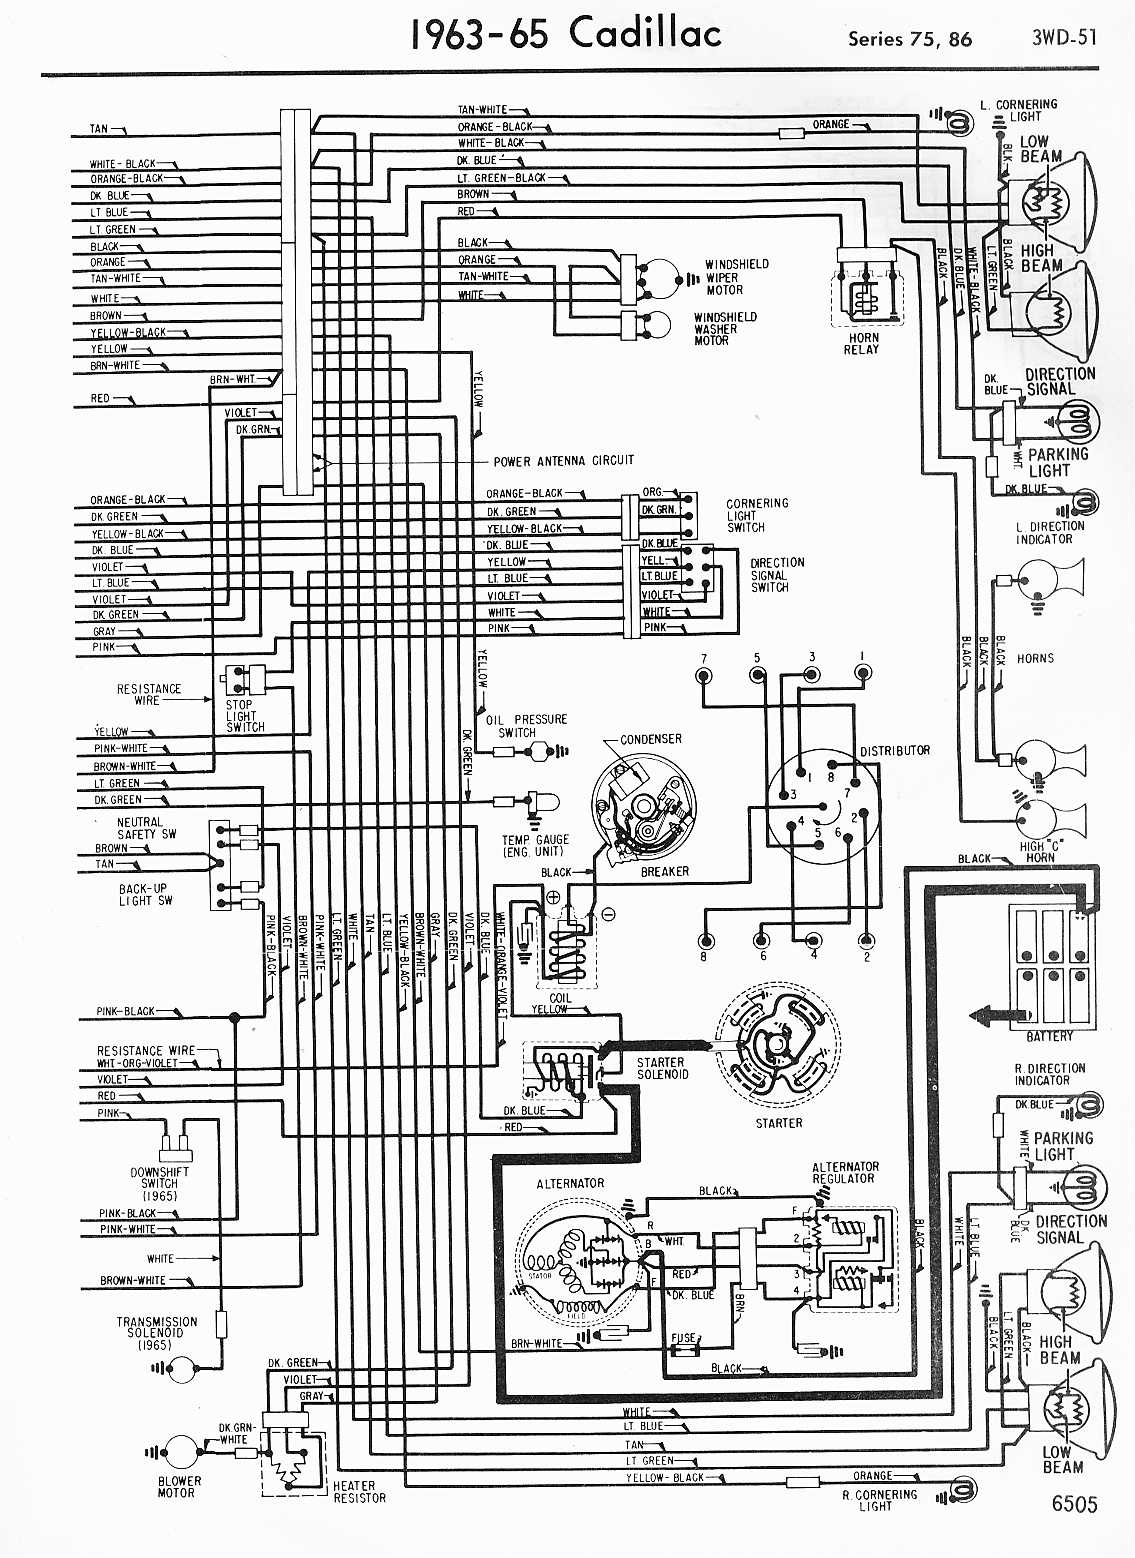 MWireCadi65_3WD 051 cadillac wiring harness ram truck wiring harness \u2022 wiring diagrams  at sewacar.co